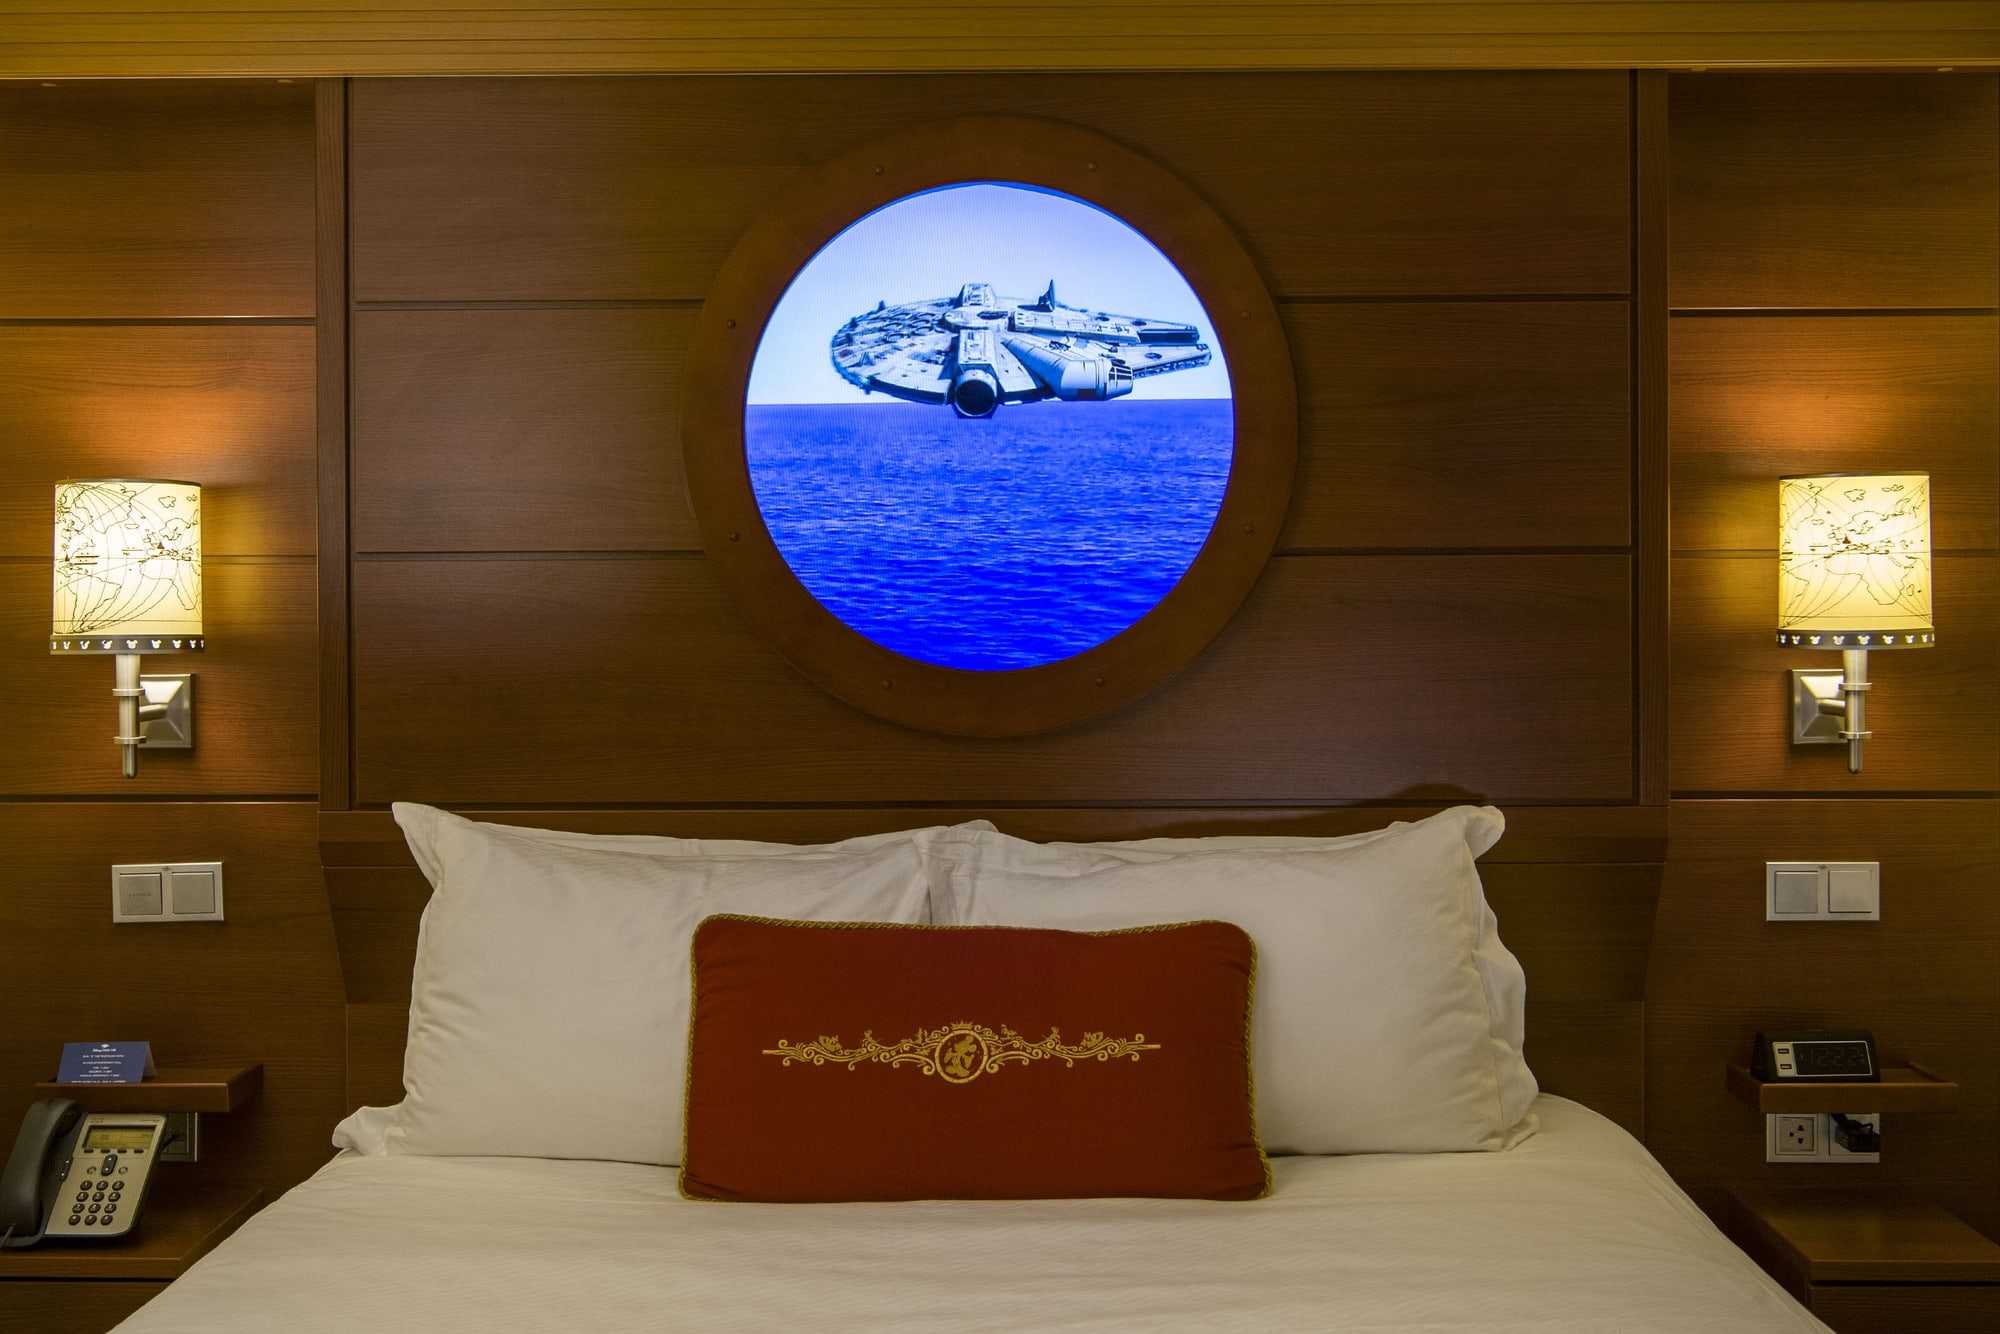 Magic Portholes transport cruisers to a galaxy far, far away with Star Wars graphics aboard Disney Dream with kids